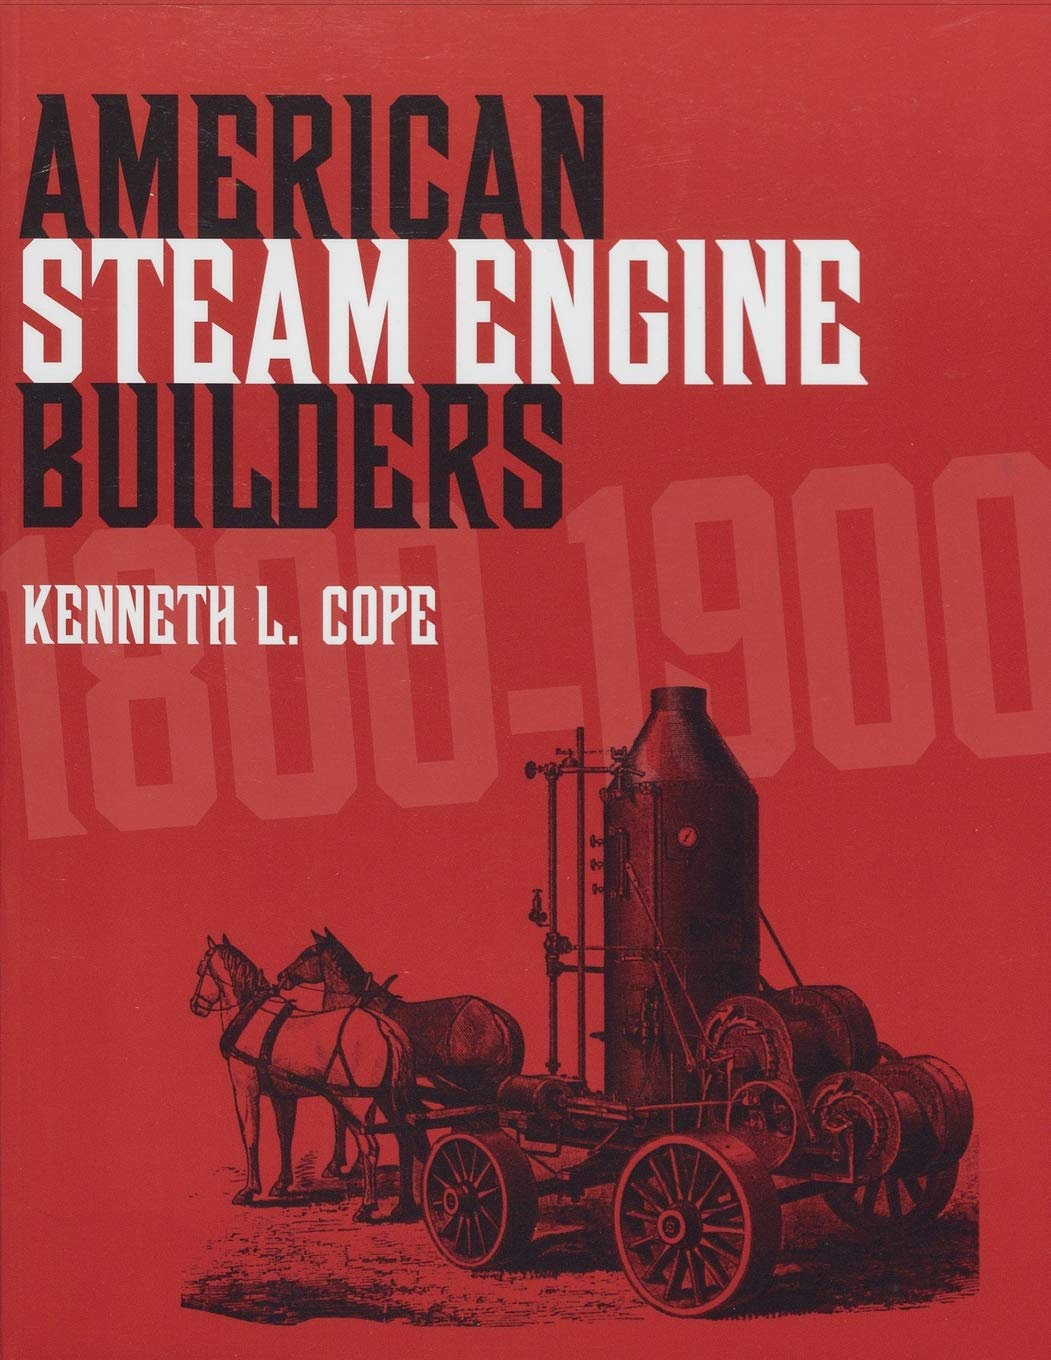 American Steam Engine Builders